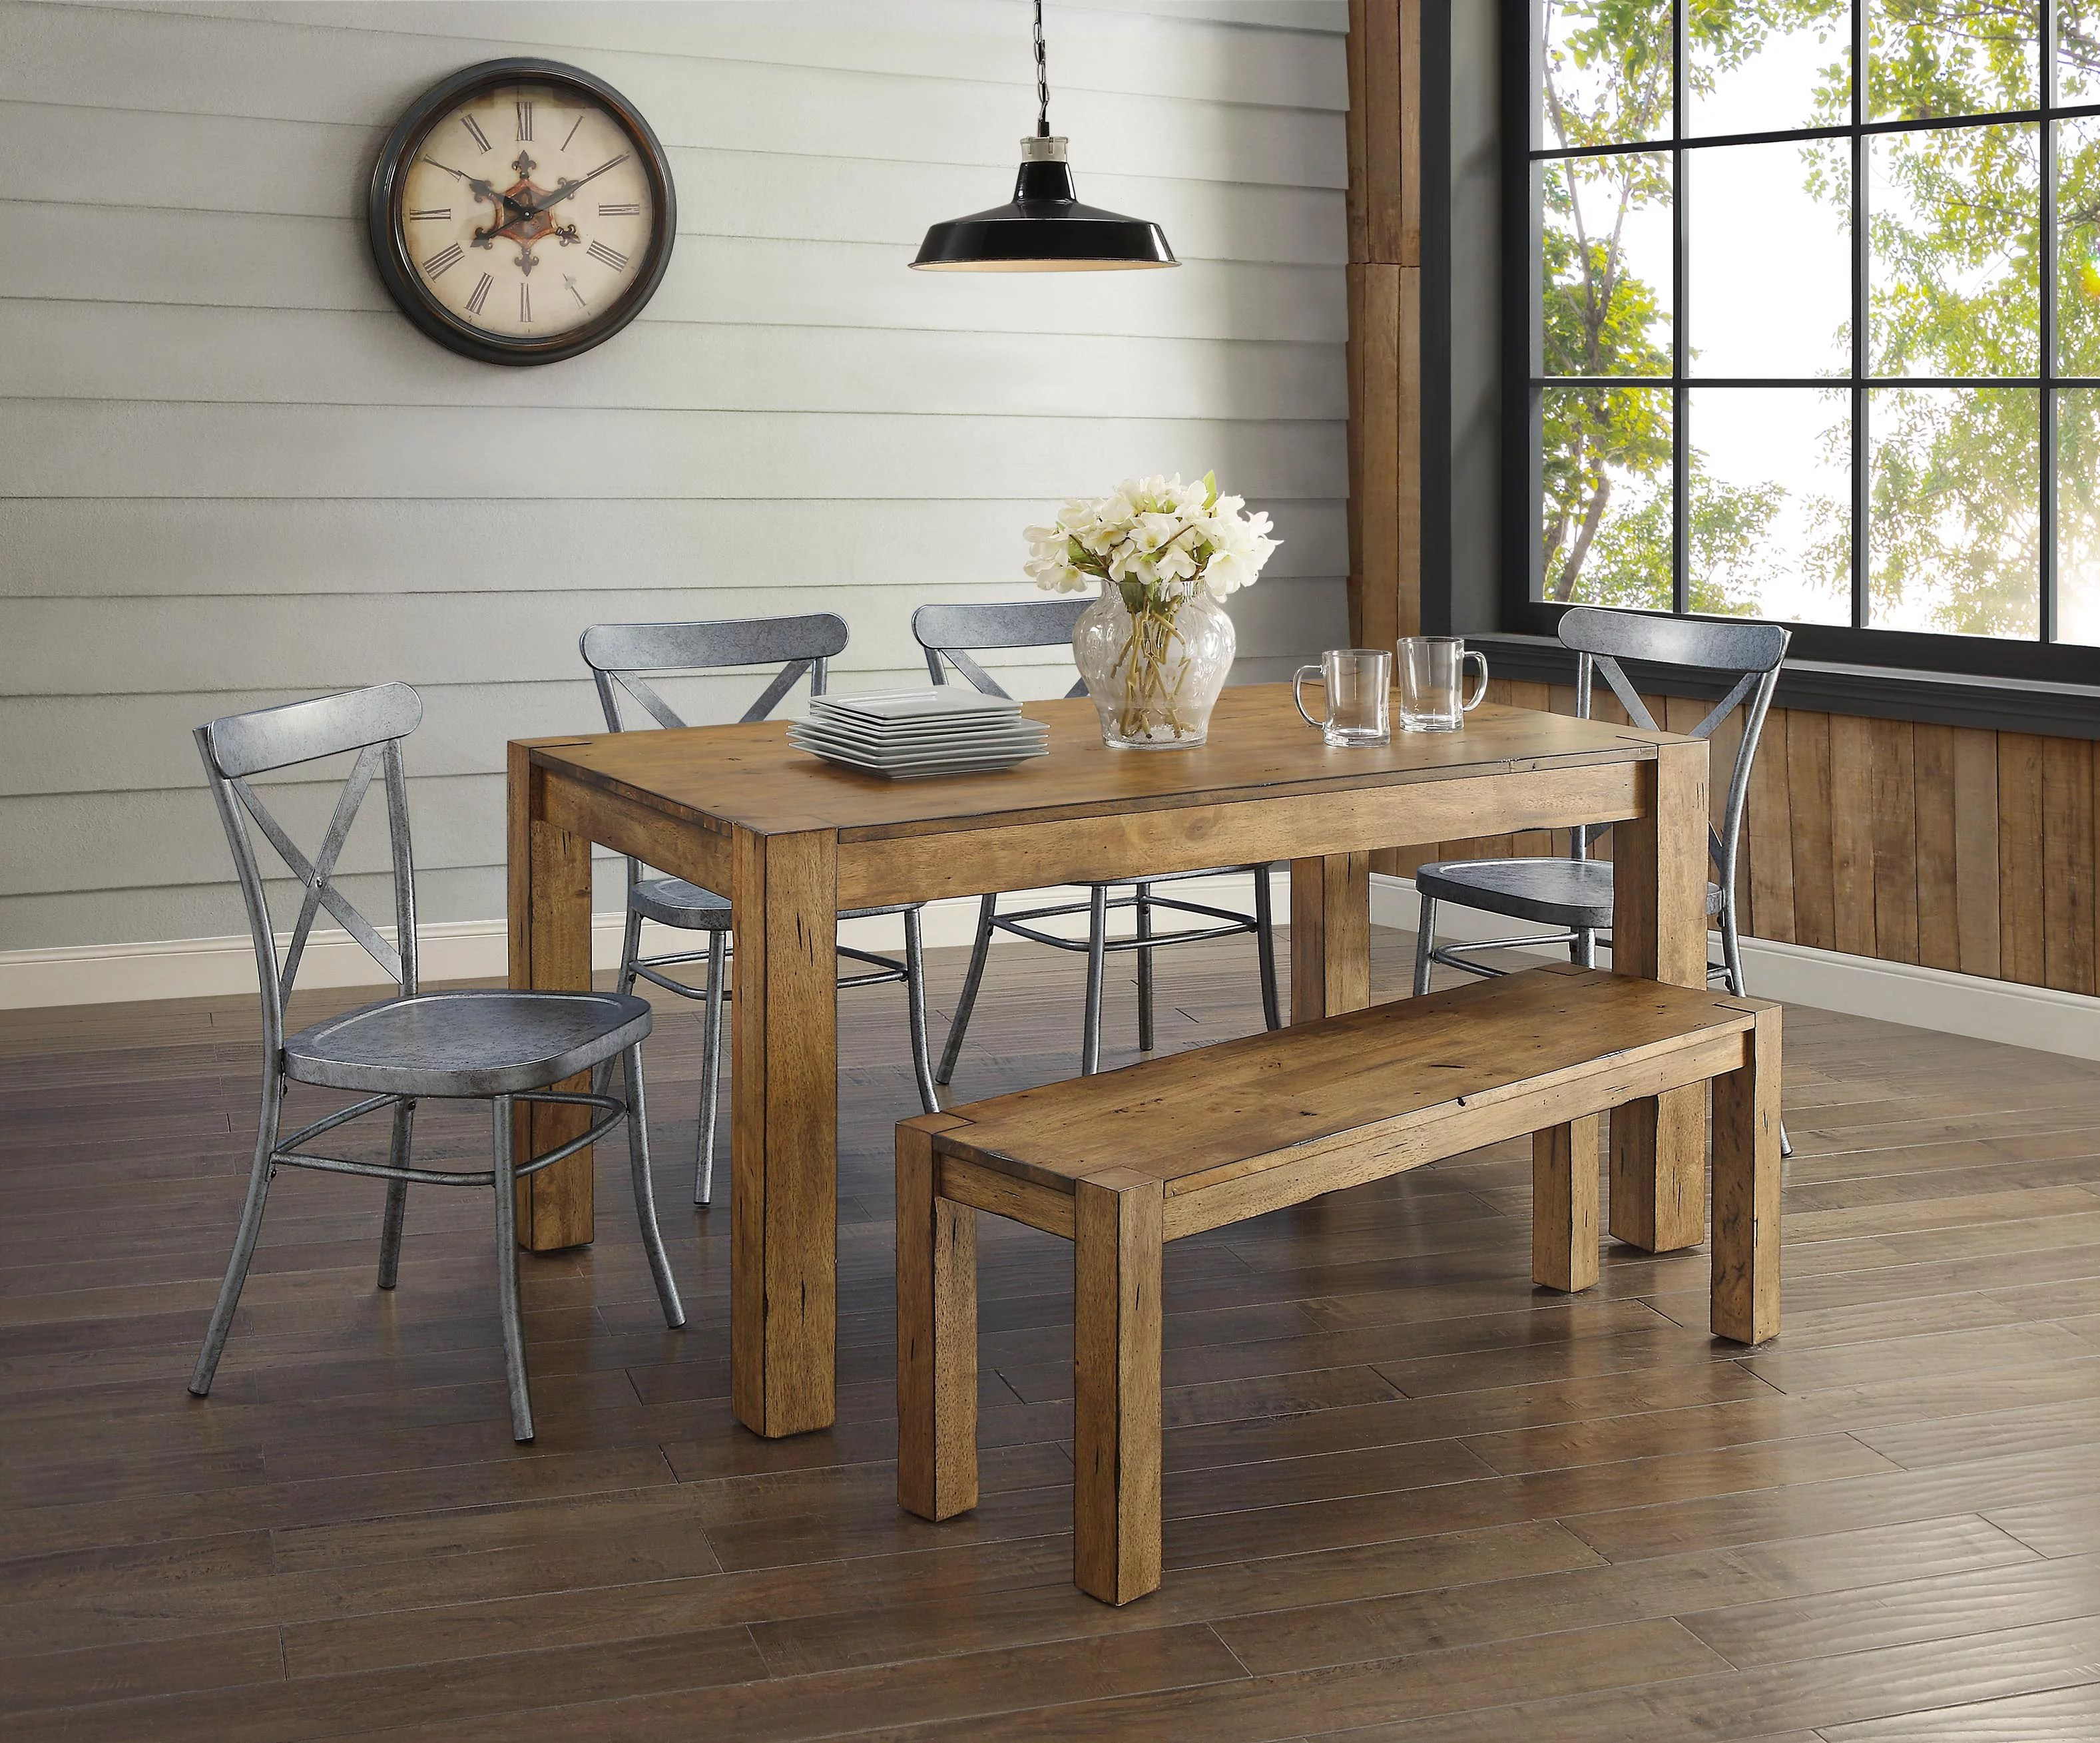 Dining Room Furniture Rustic Better Homes And Gardens Bryant 3 Piece Dining Set Rustic Wood Walmart